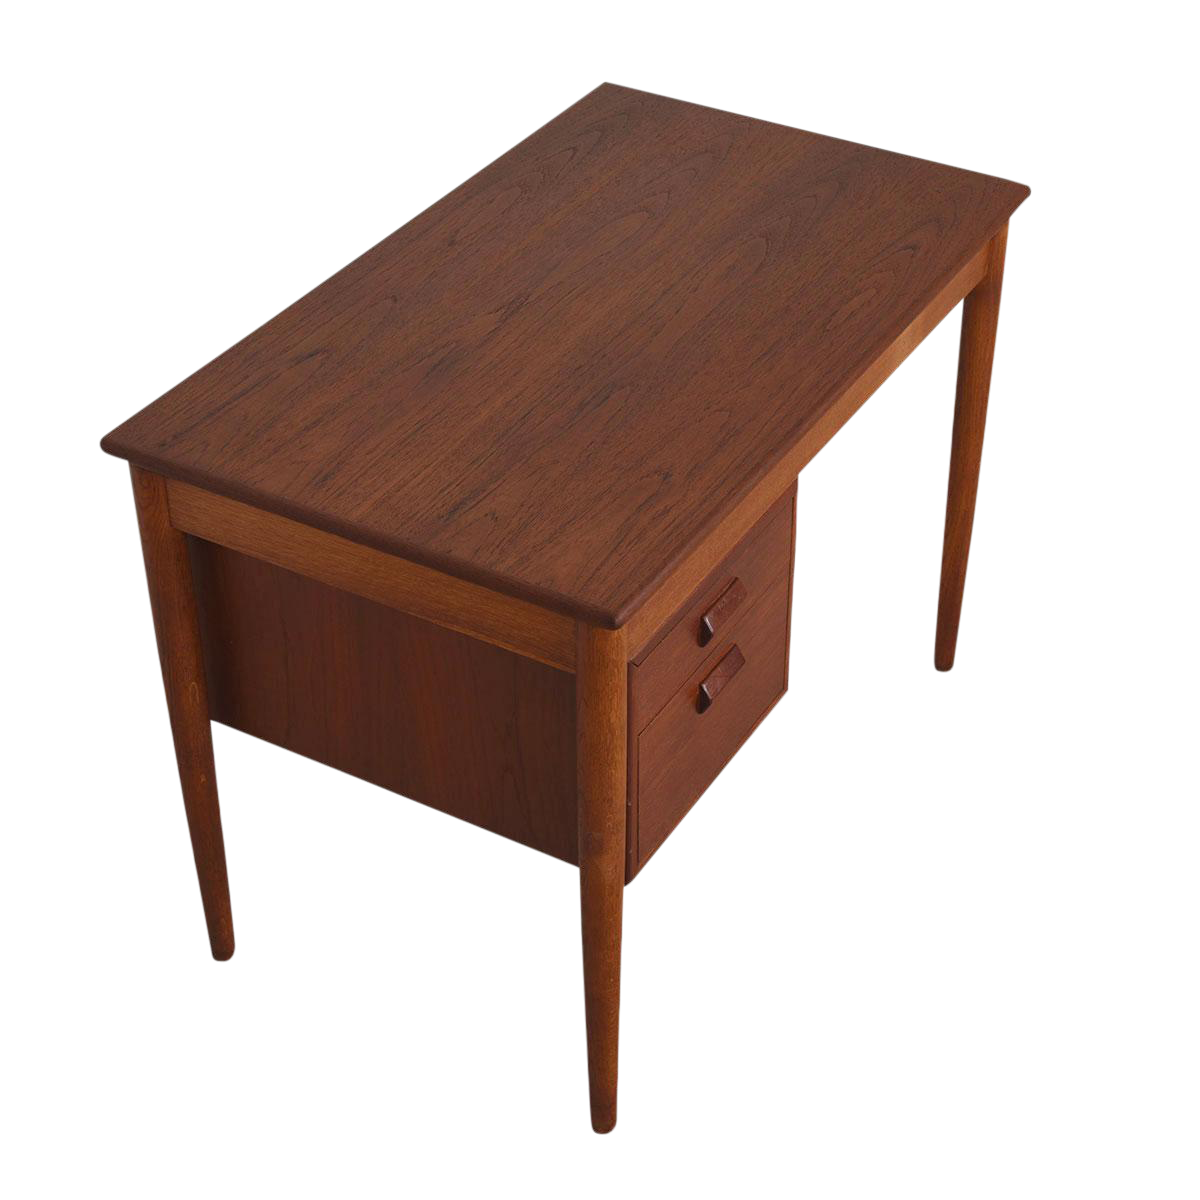 Early danish modern compact writing desk in teak by borge